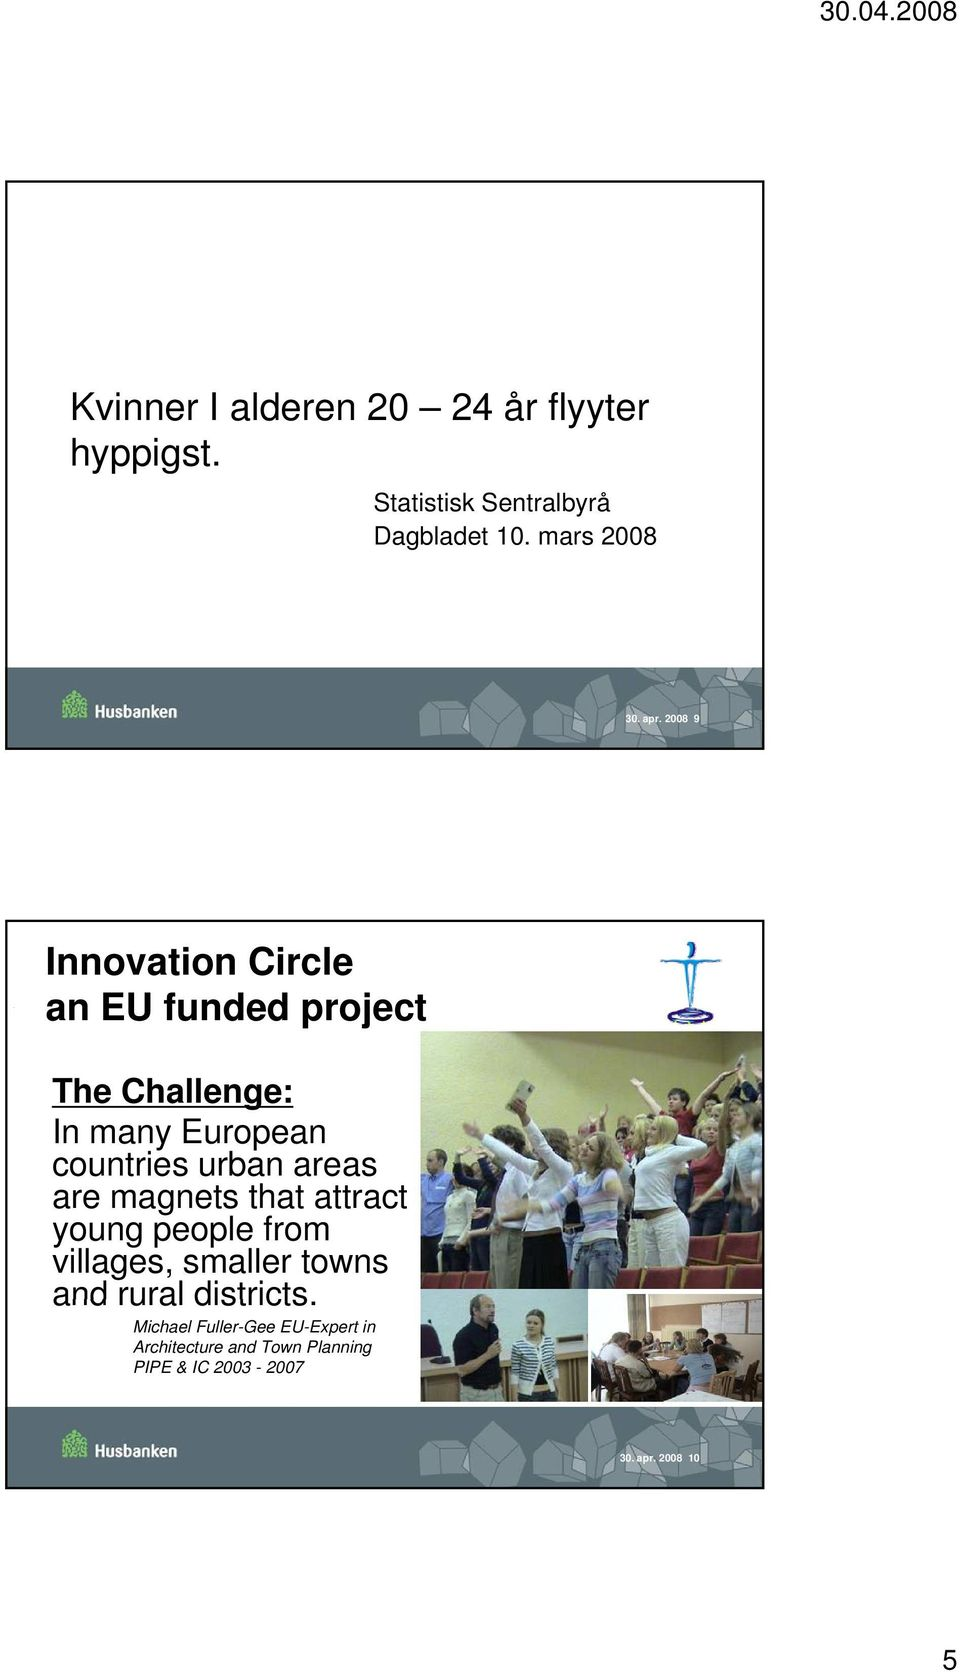 Innovation Circle an EU funded project The Challenge: In many European countries urban areas are